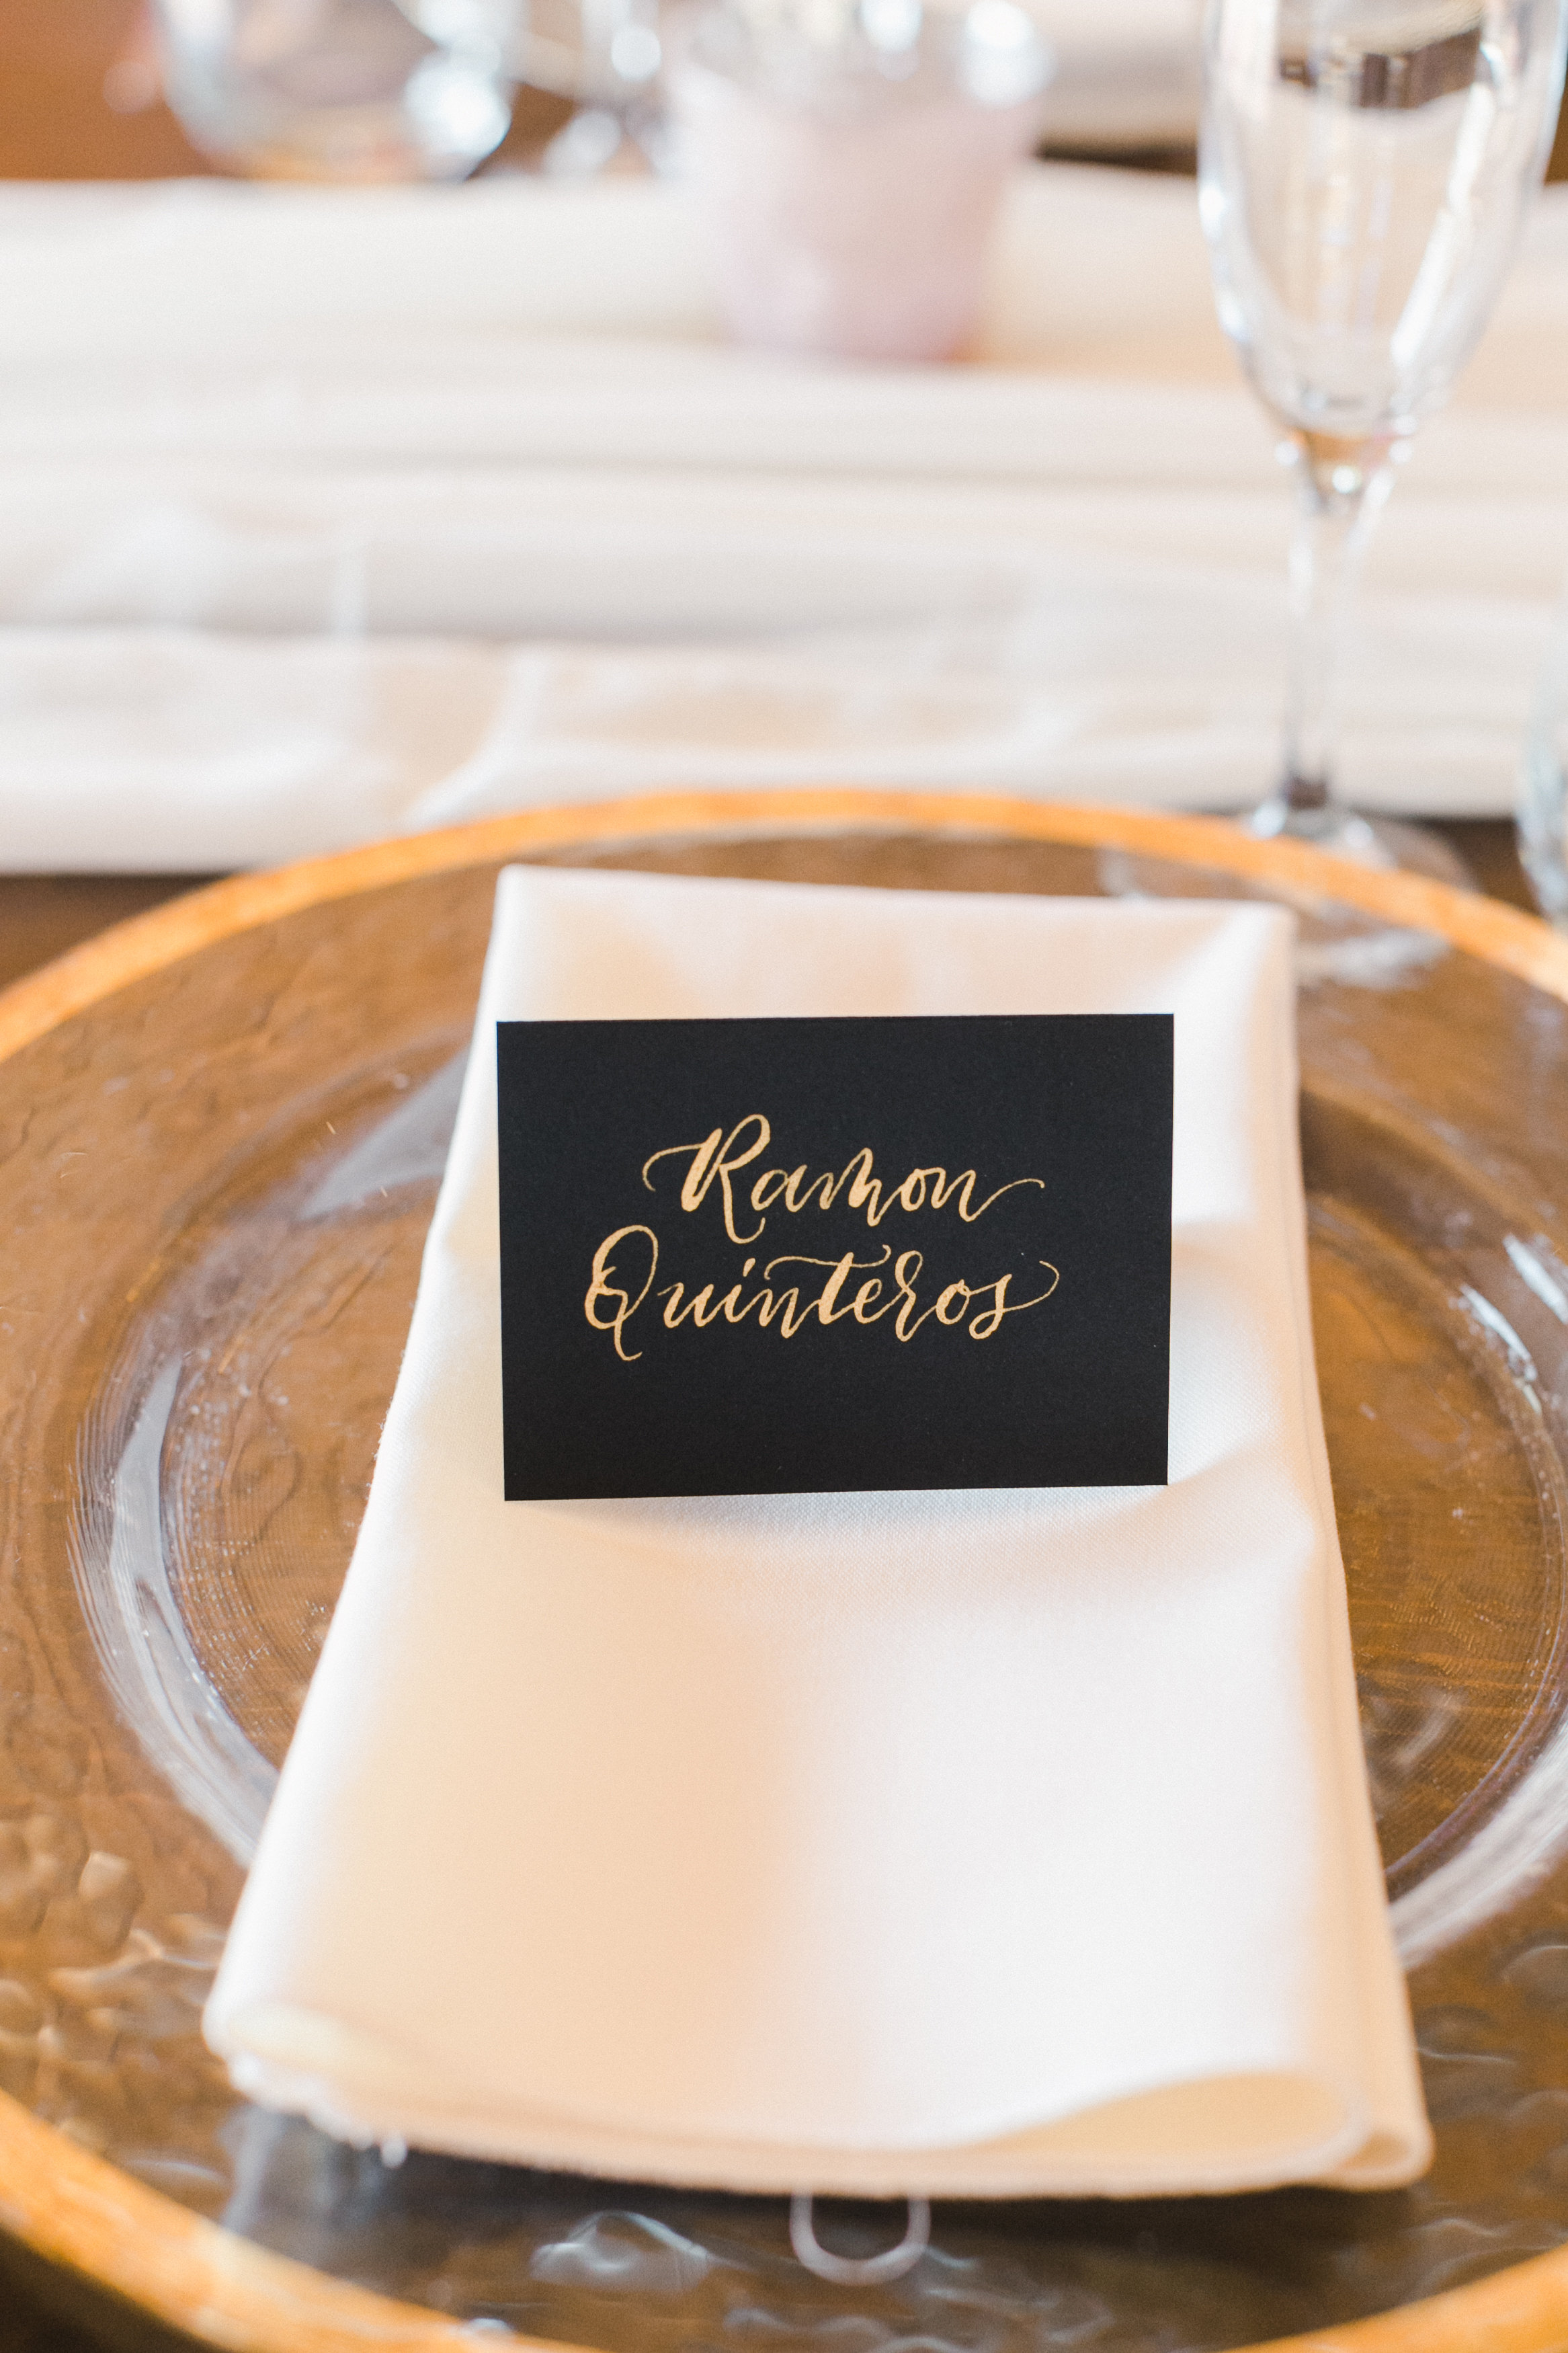 Yosemite wedding place cards calligraphy items by paperloveme4.jpg